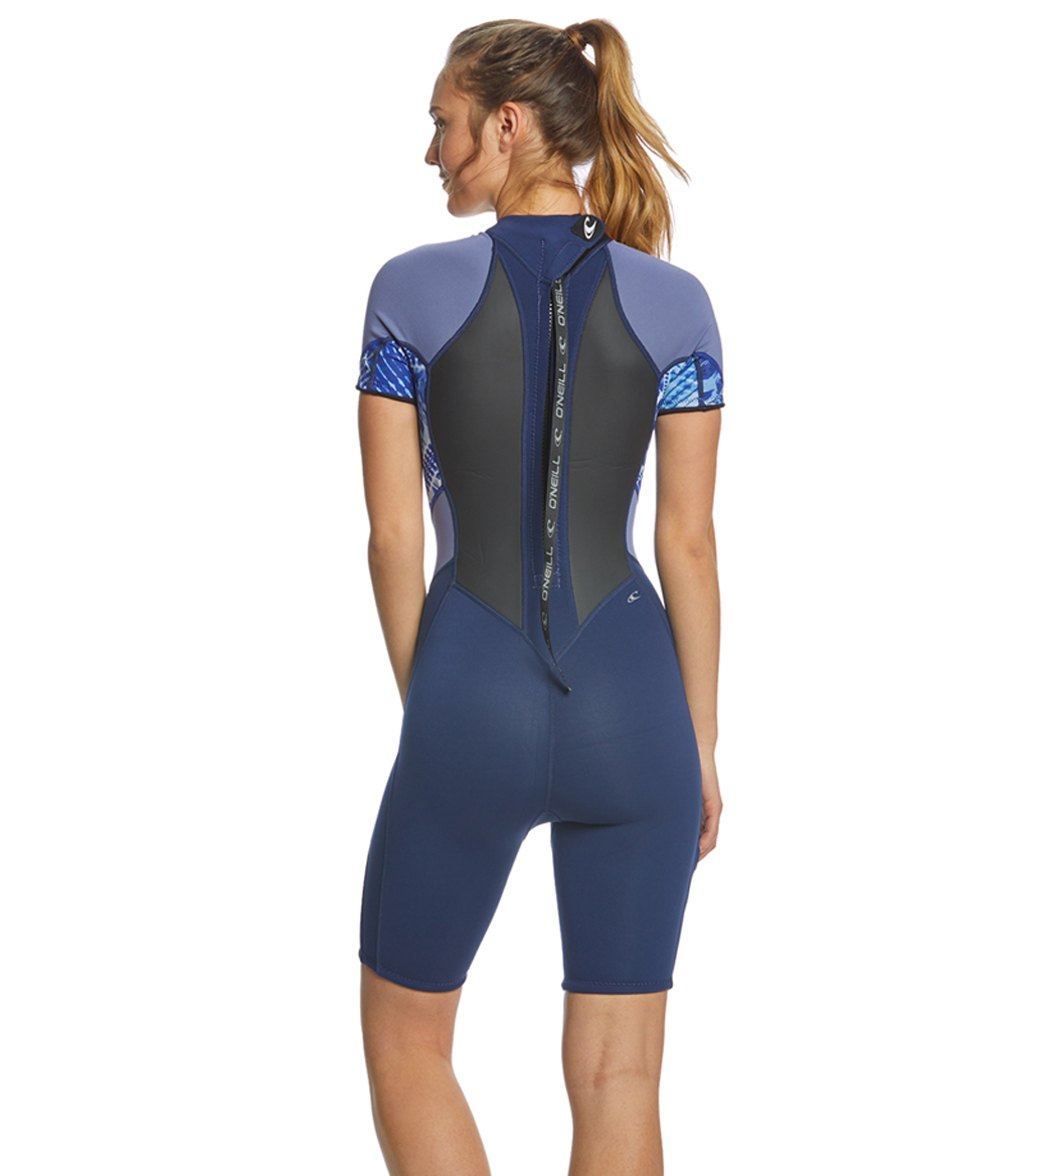 O Neill Women s 2 1MM Bahia Short Sleeve Springsuit Wetsuit at ... e00c44a4e